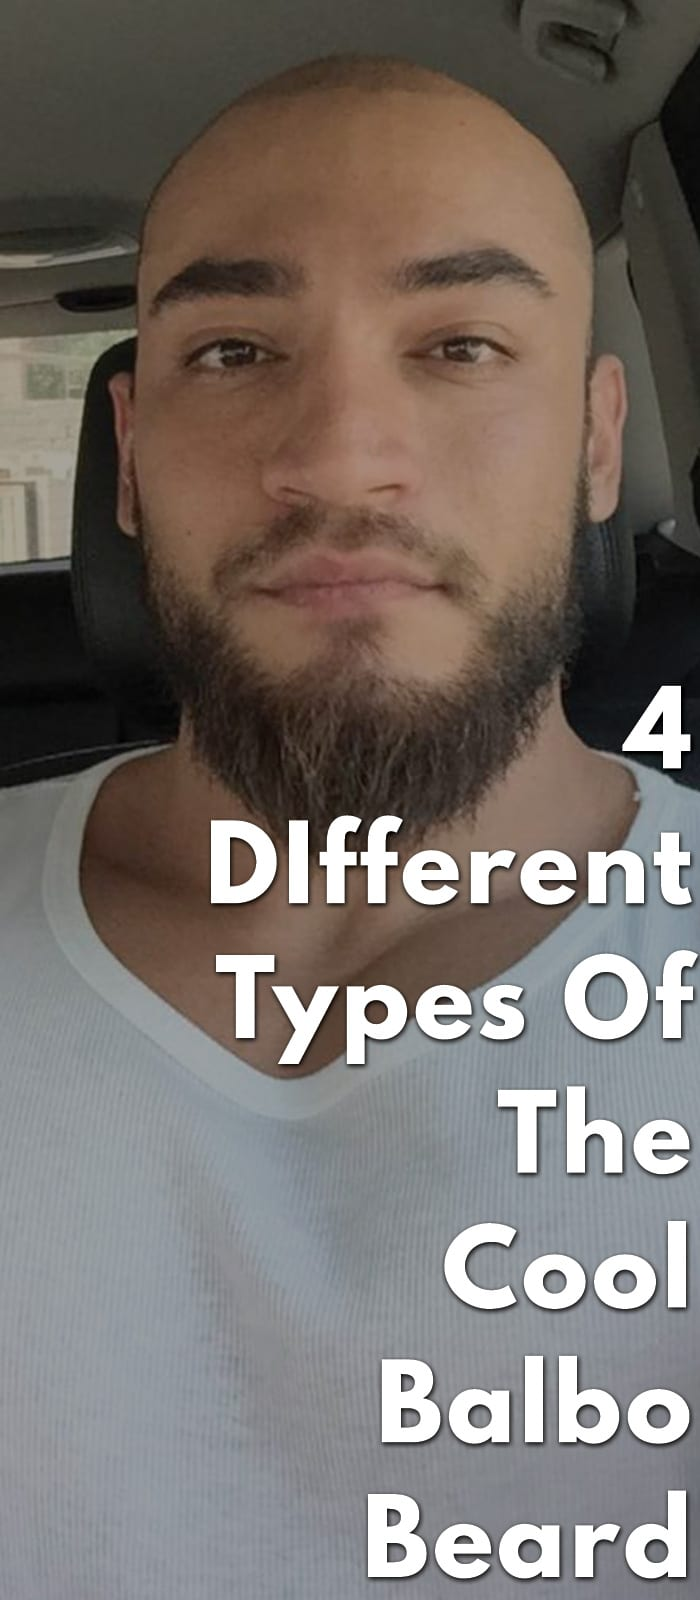 4-DIfferent-Types-Of-The-Cool-Balbo-Beard.